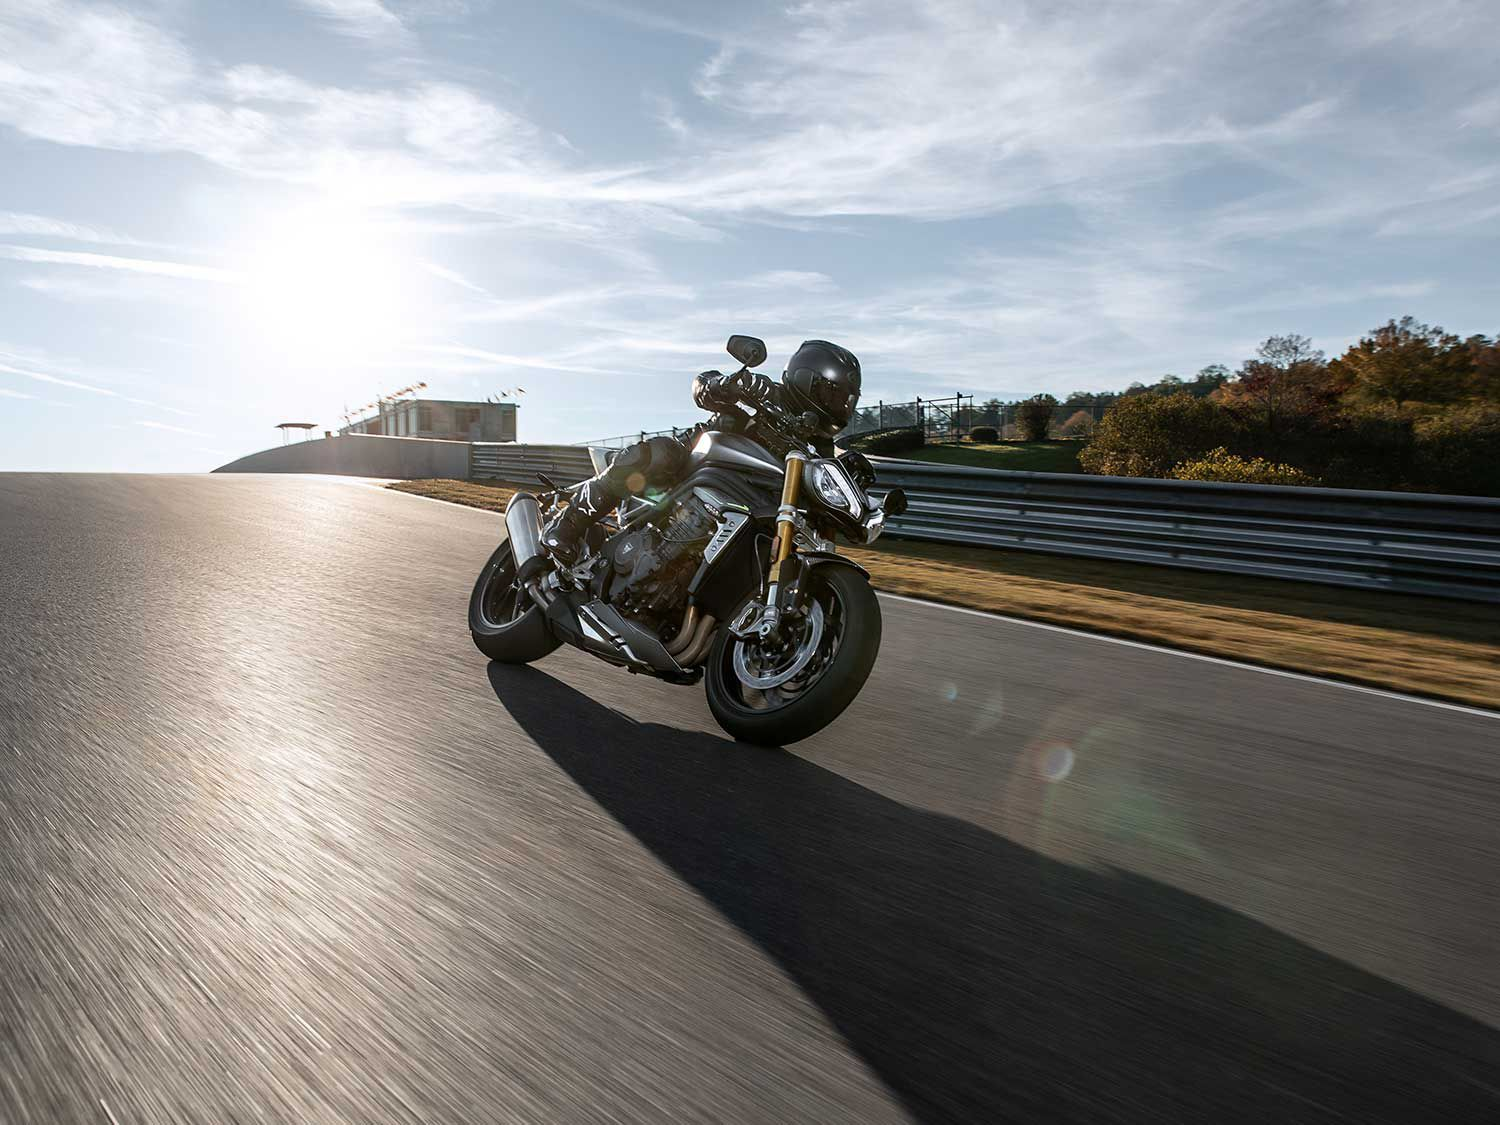 Engineers were able to shave 22 pounds from the Speed Triple.